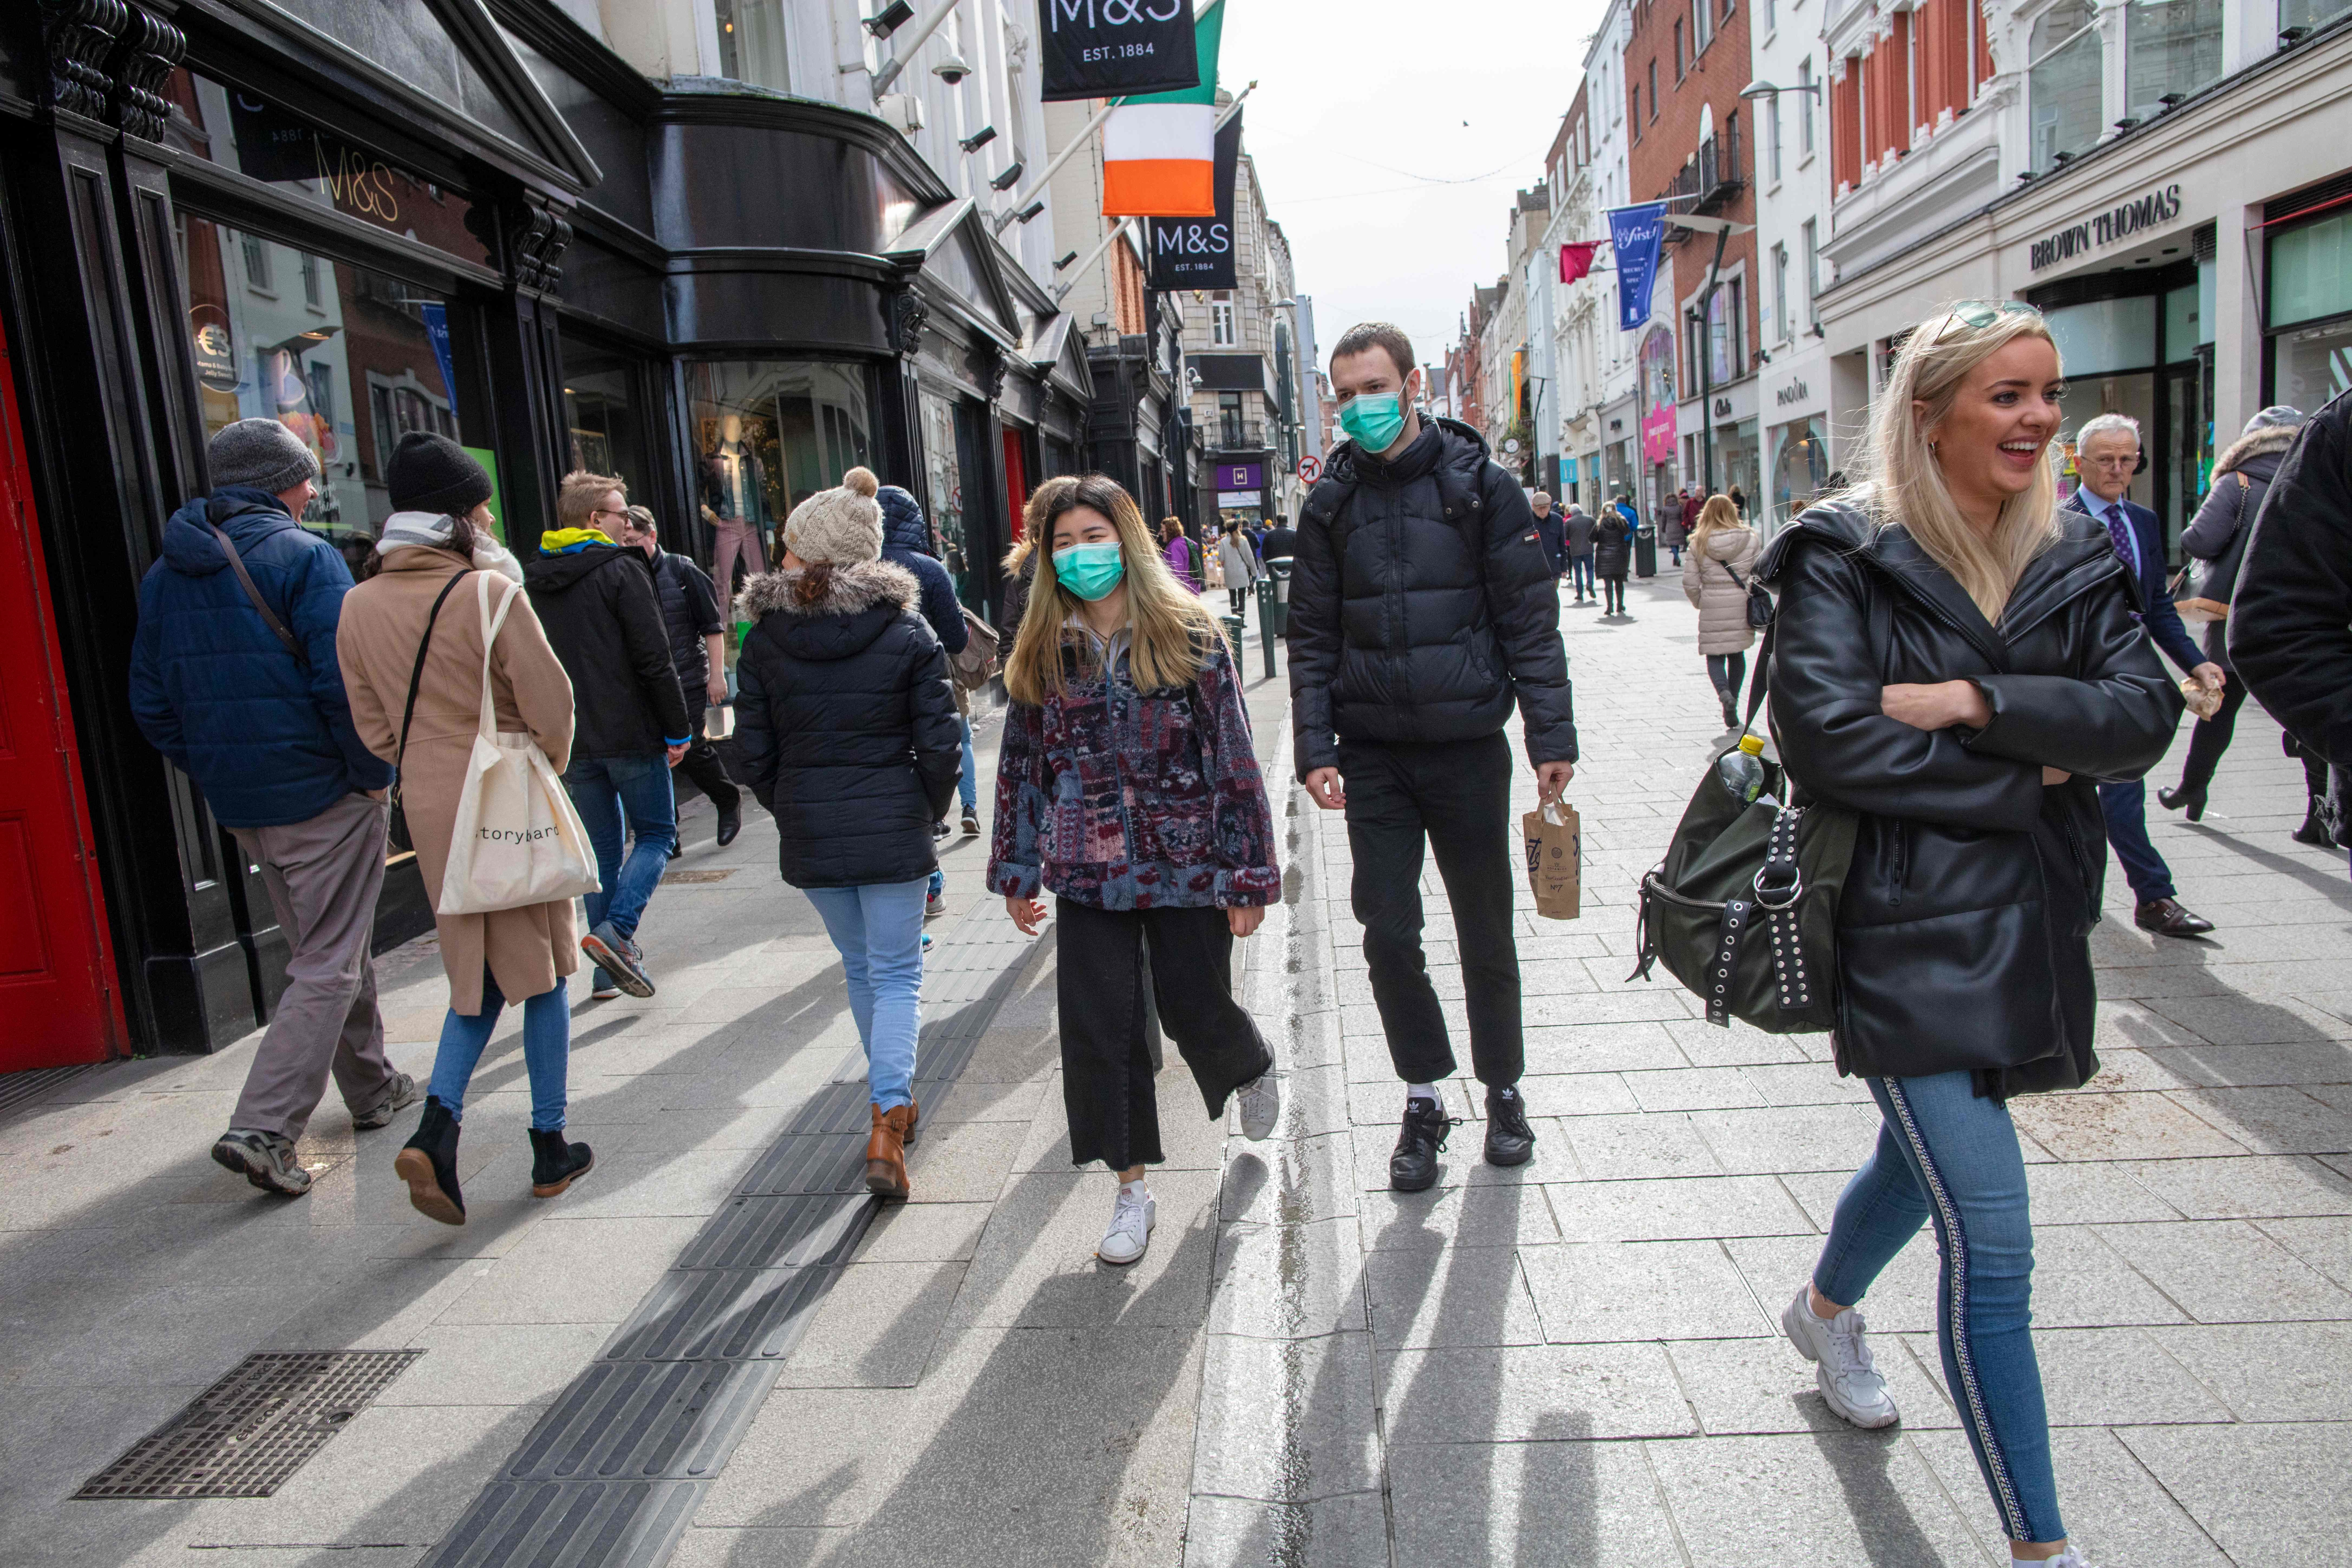 A couple wear surgical masks while shopping in the Grafton shopping area of in Dublin, Ireland on March 12, 2020. (Paul Faith/AFP via Getty Images)